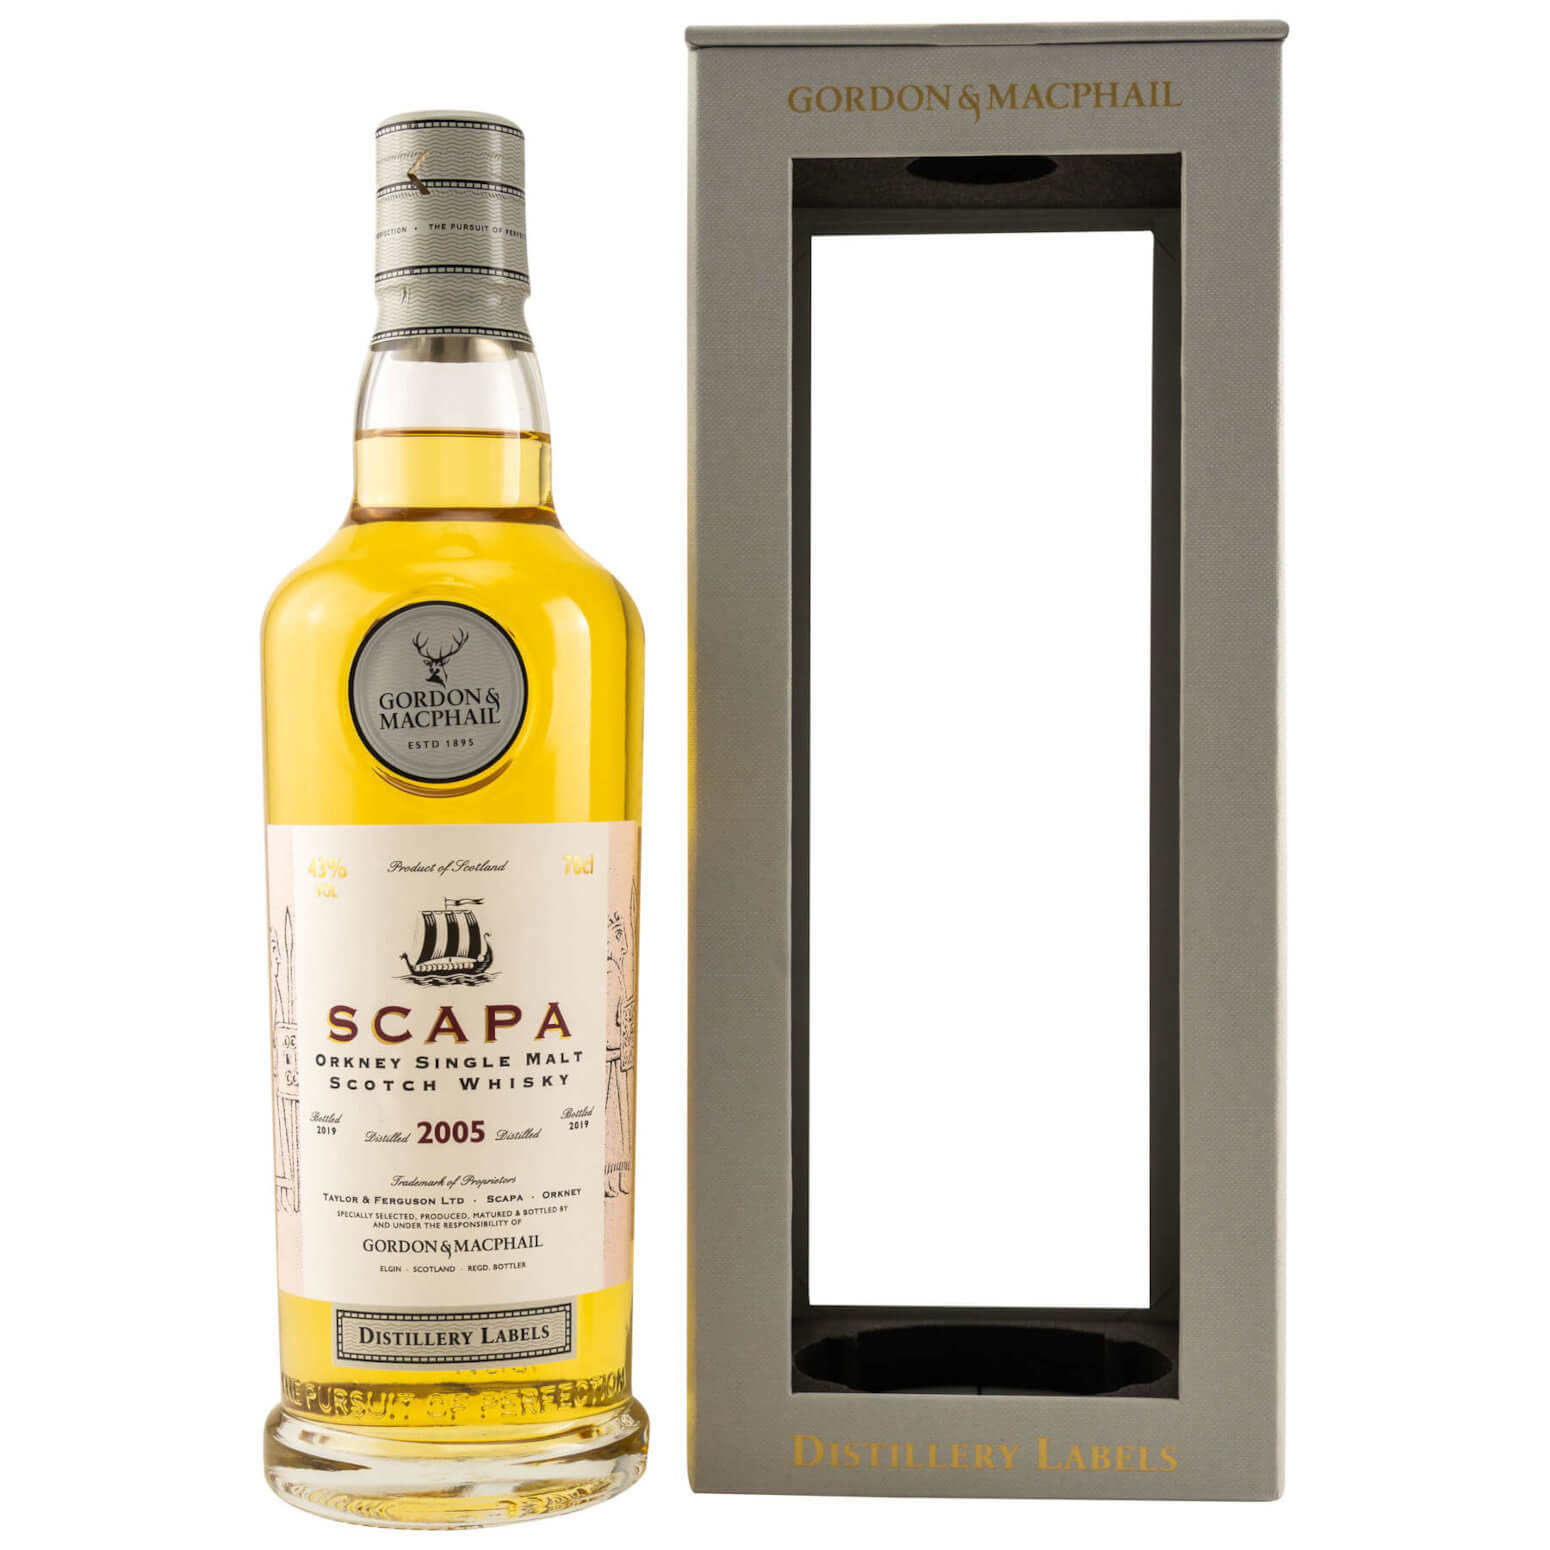 Scapa 2005/2019 Gordon & Macphail Islands Whisky